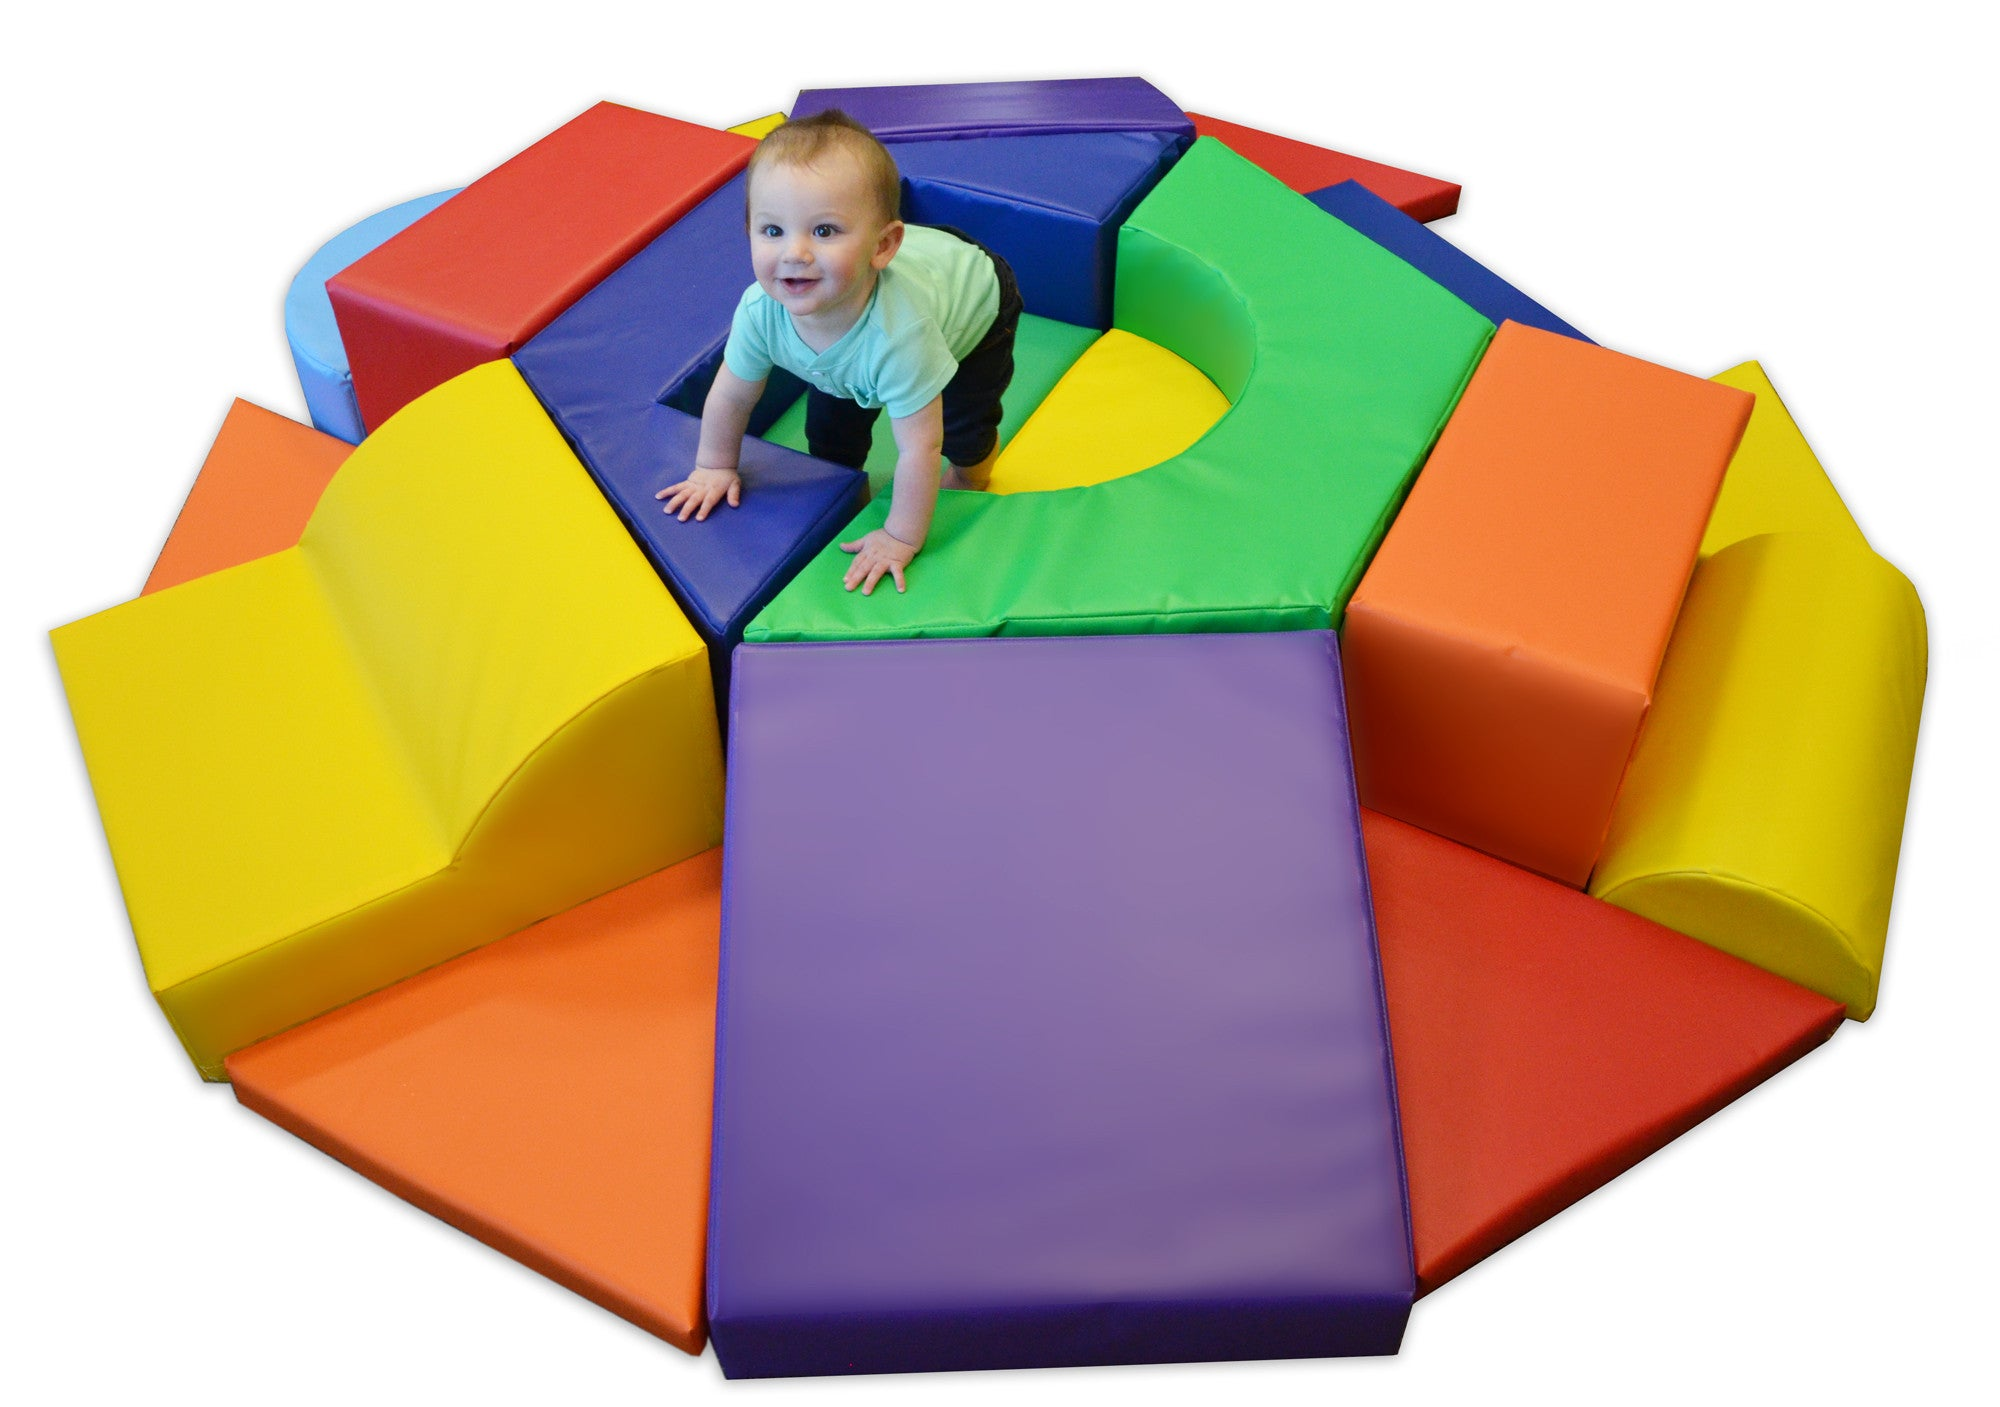 Hexagon Toddler Soft Play Climber